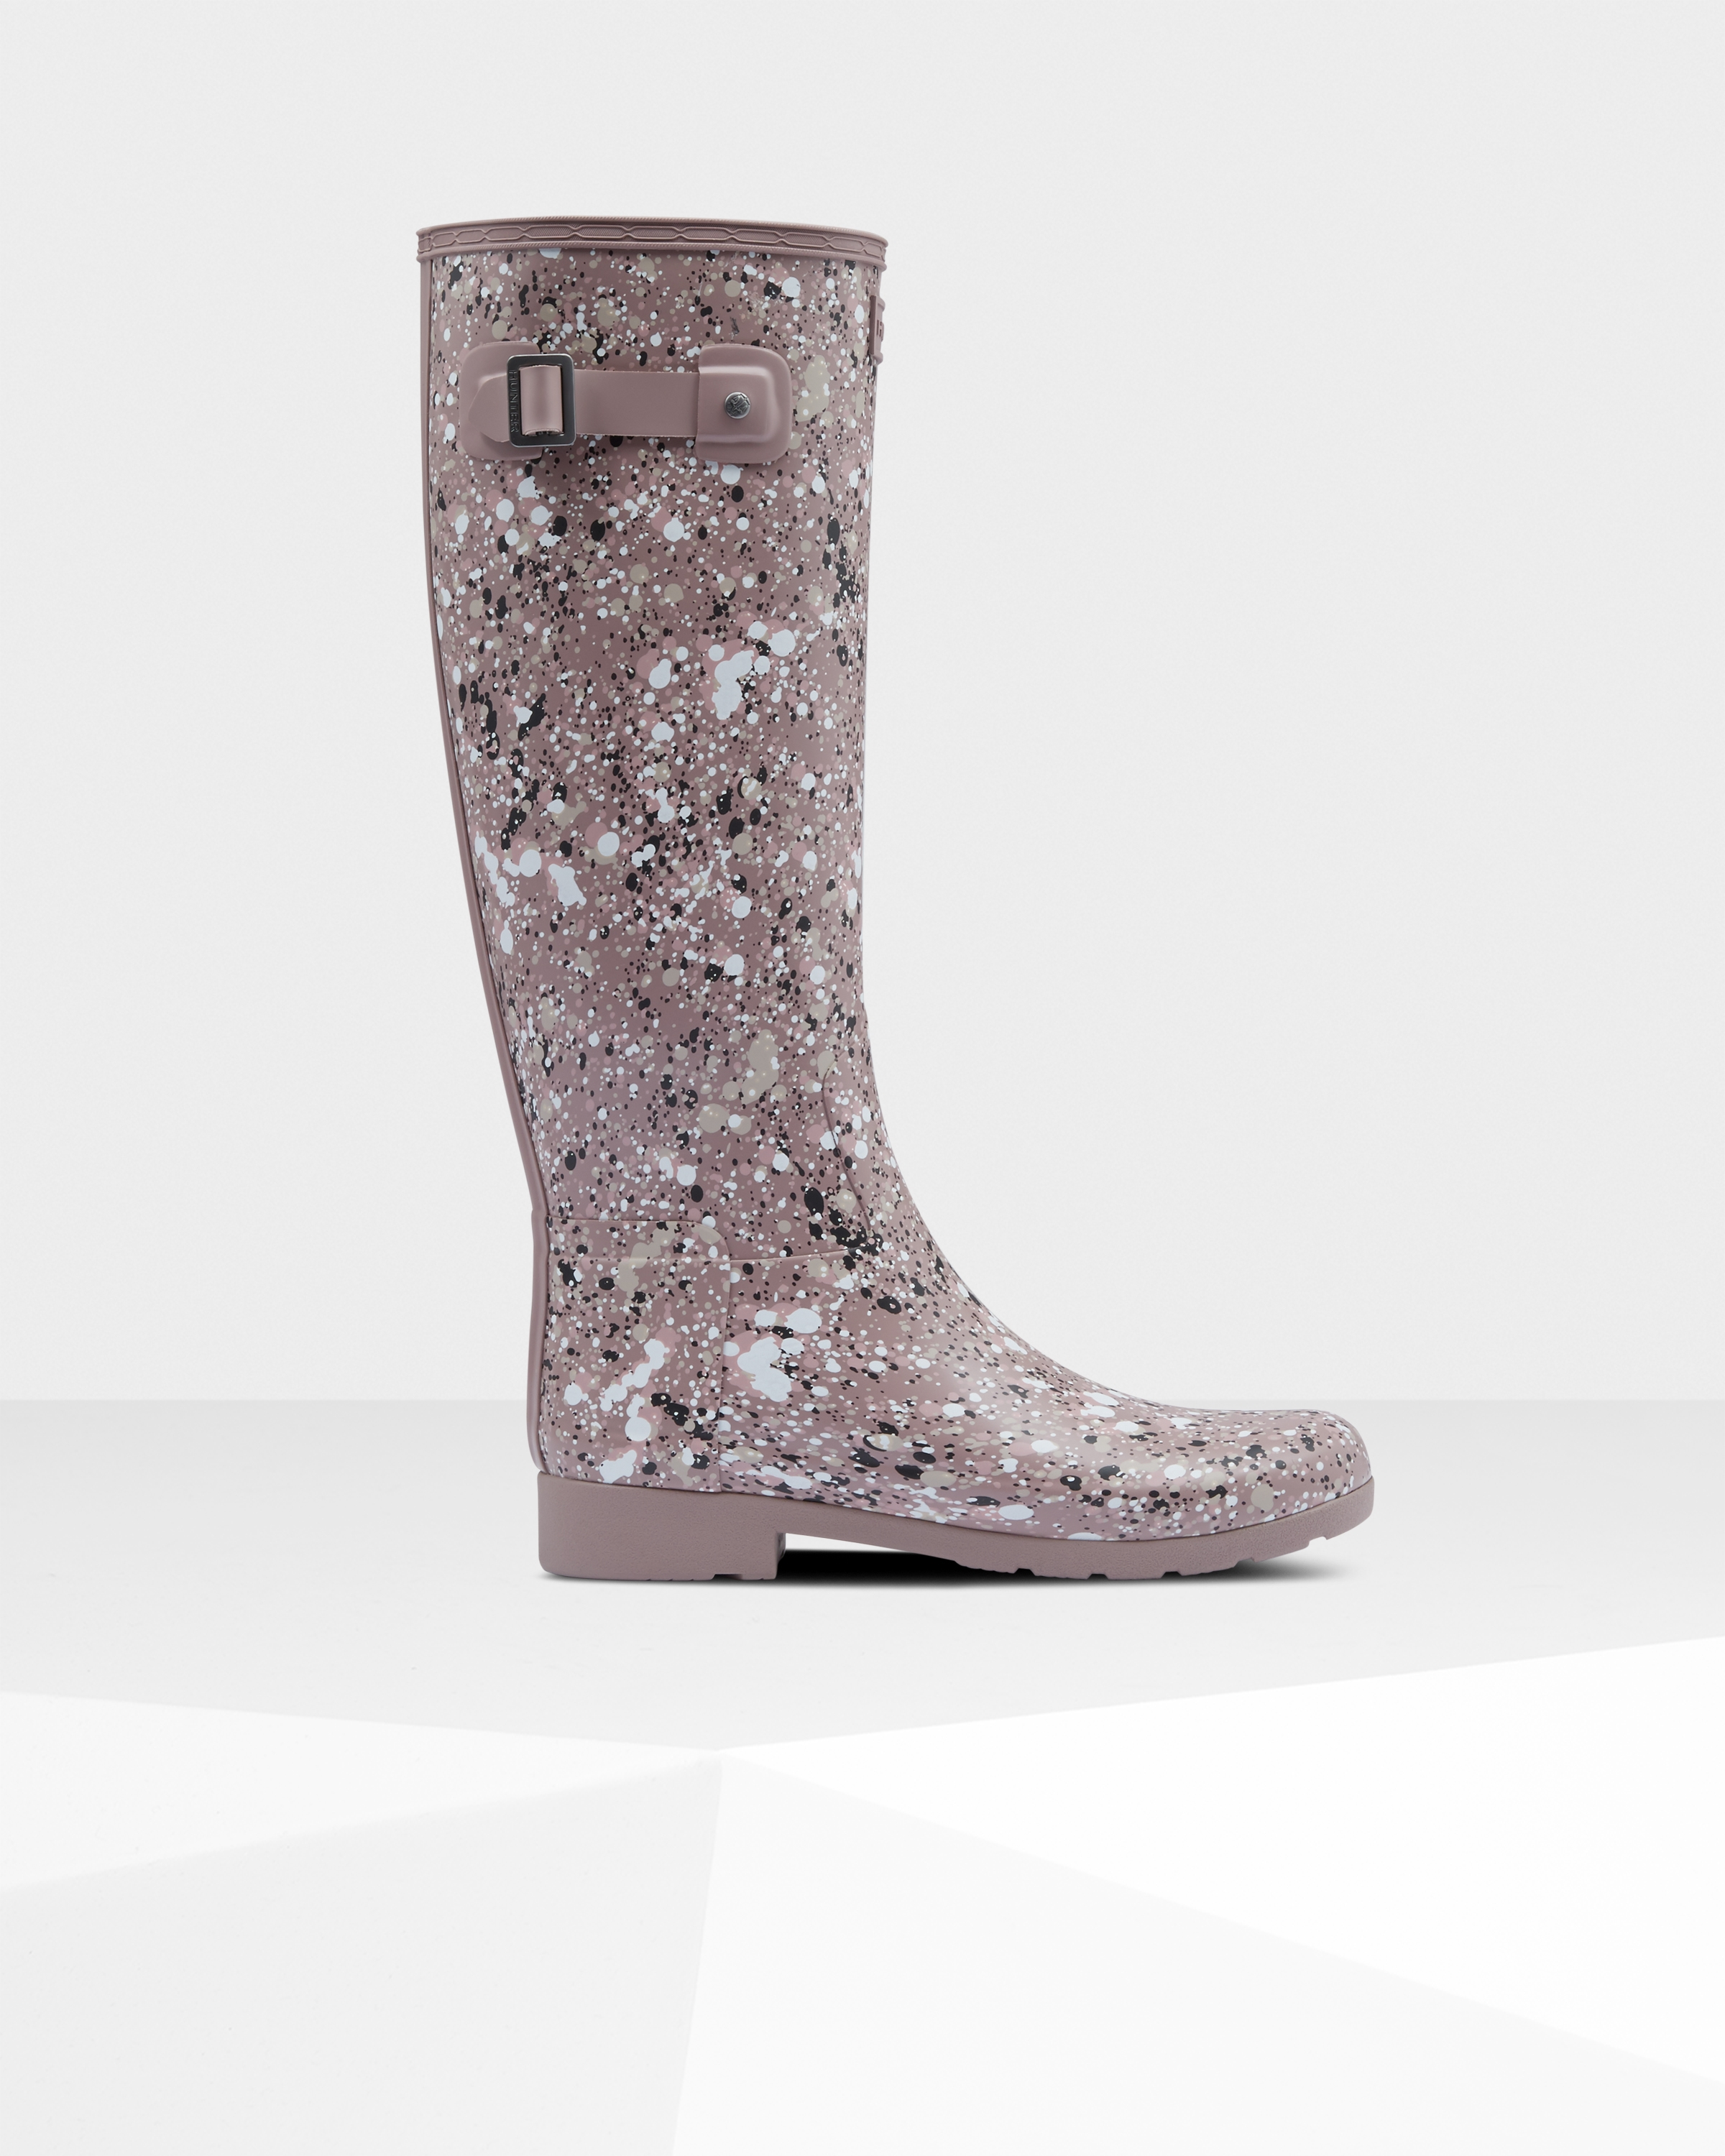 Women's Refined Particle Print Slim Fit Tall Rain Boots: Atlantis Purple | Official Hunter Boots Store